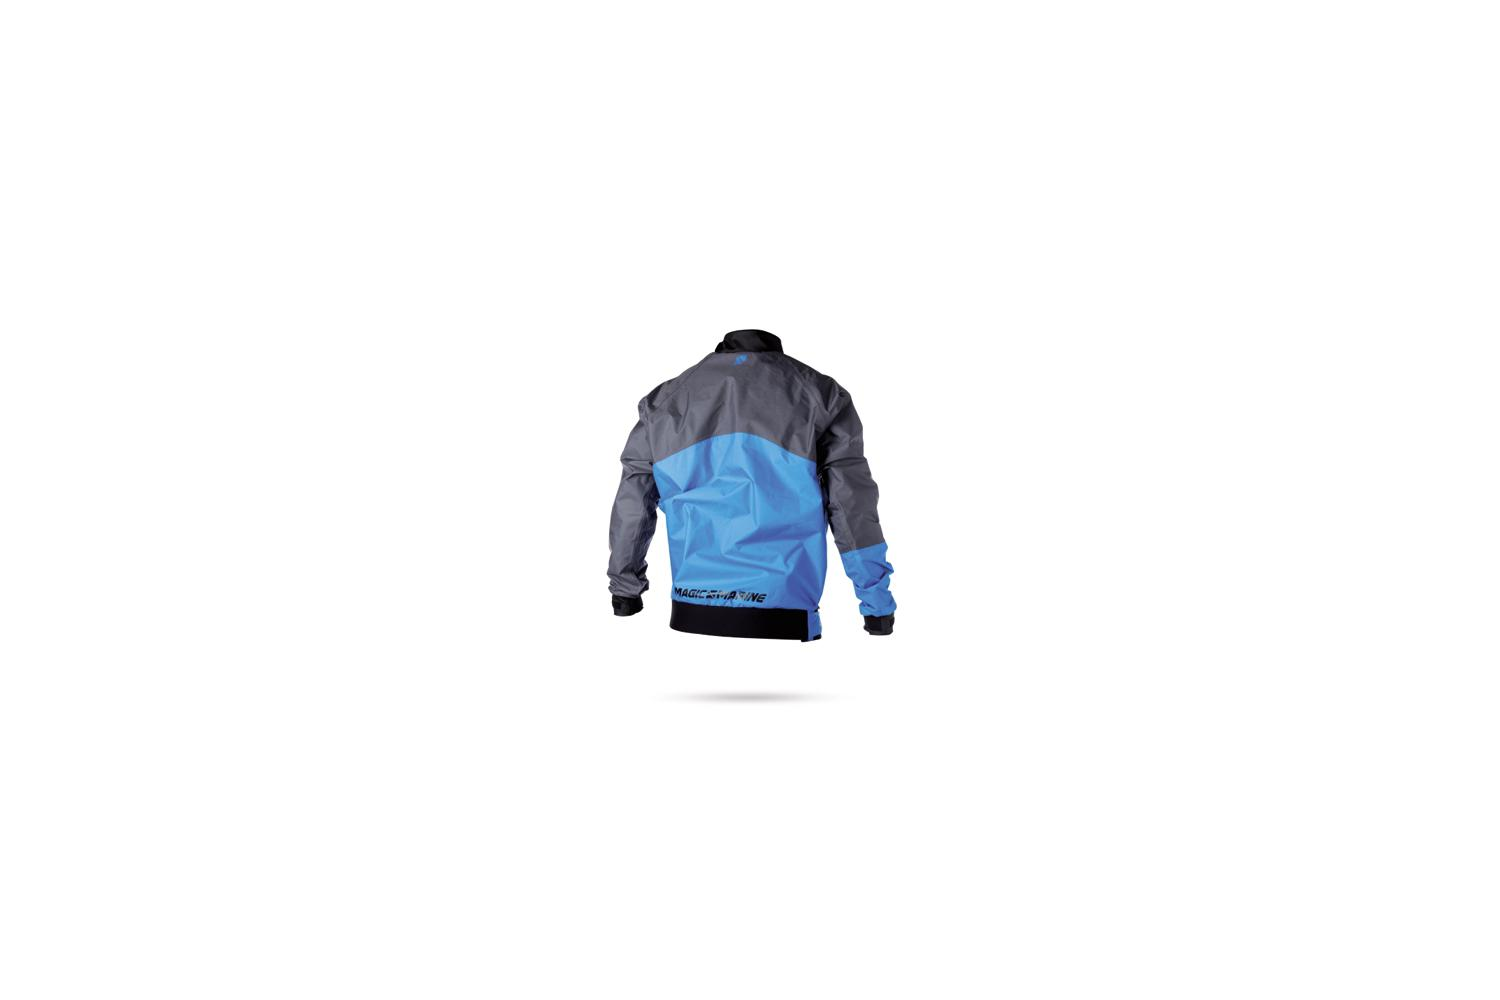 Magic Marine kinder Racing Spraytop  blauw 140  2